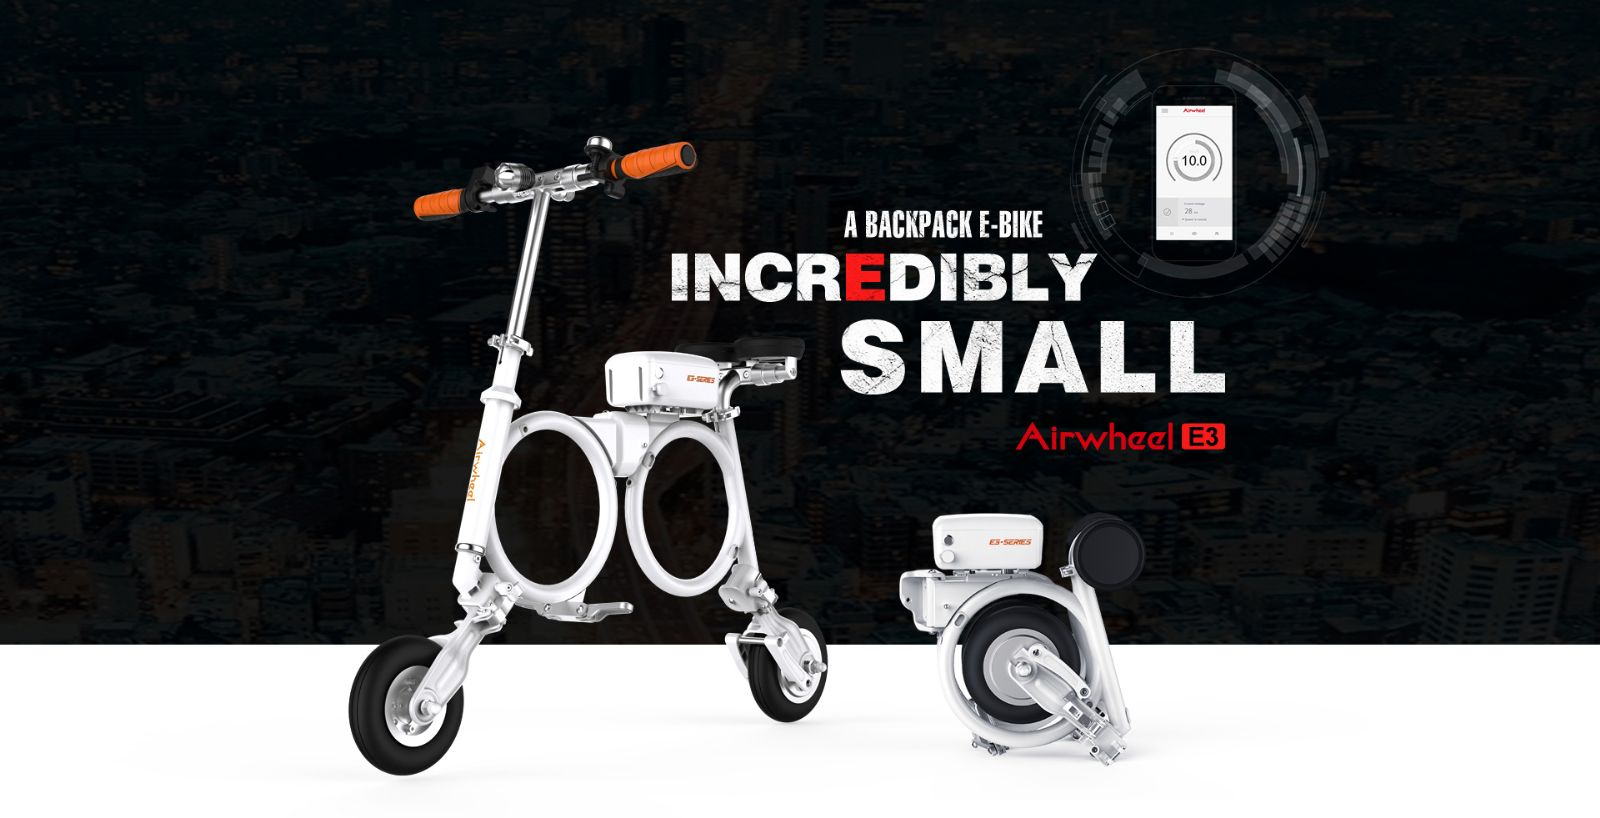 folding electric bike E3